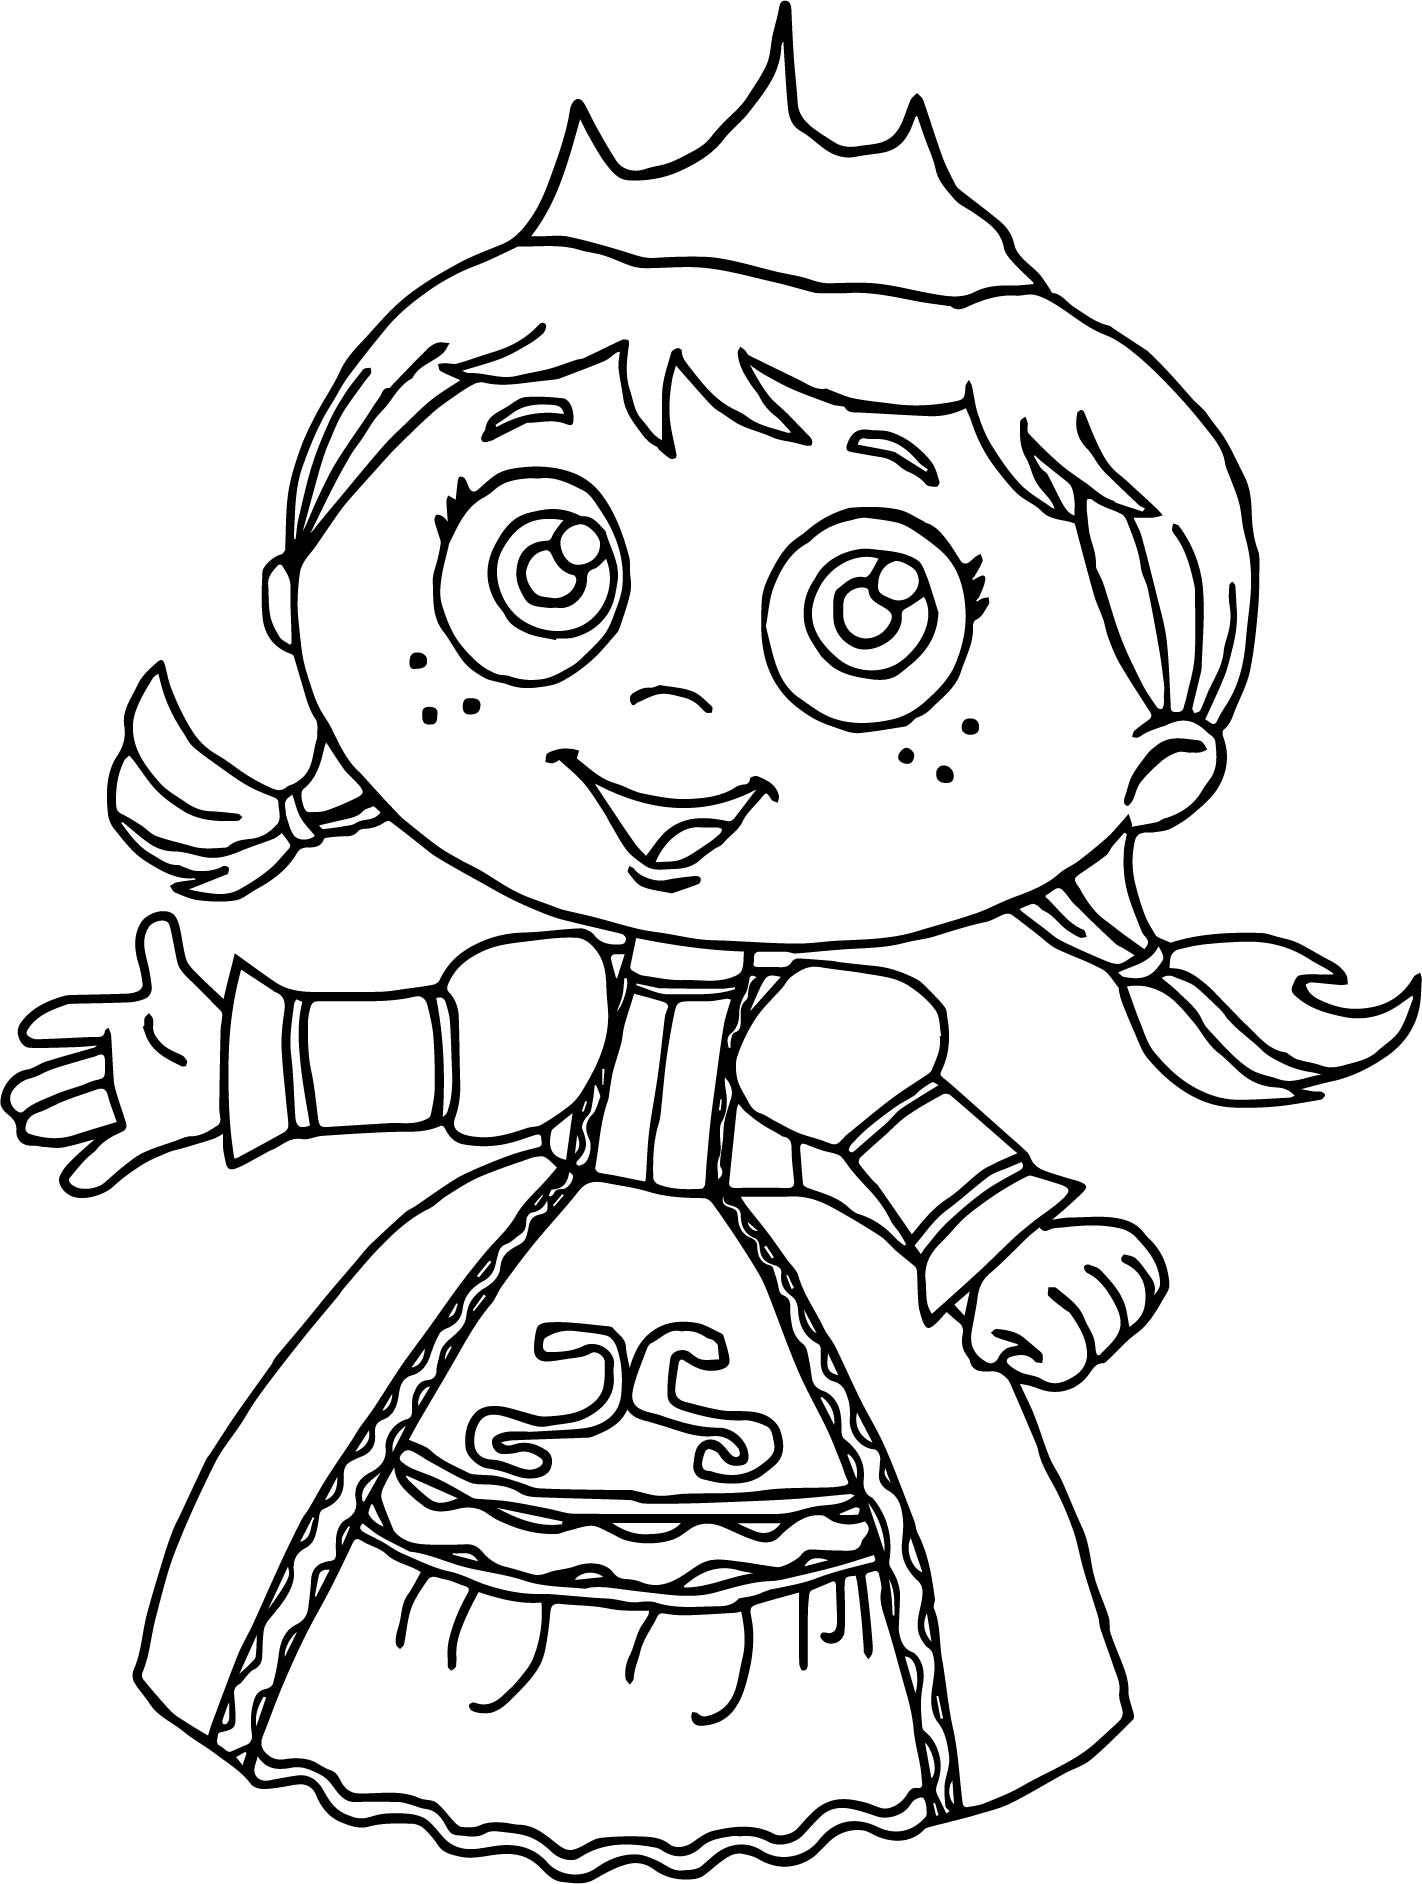 photo coloring pages - photo#17